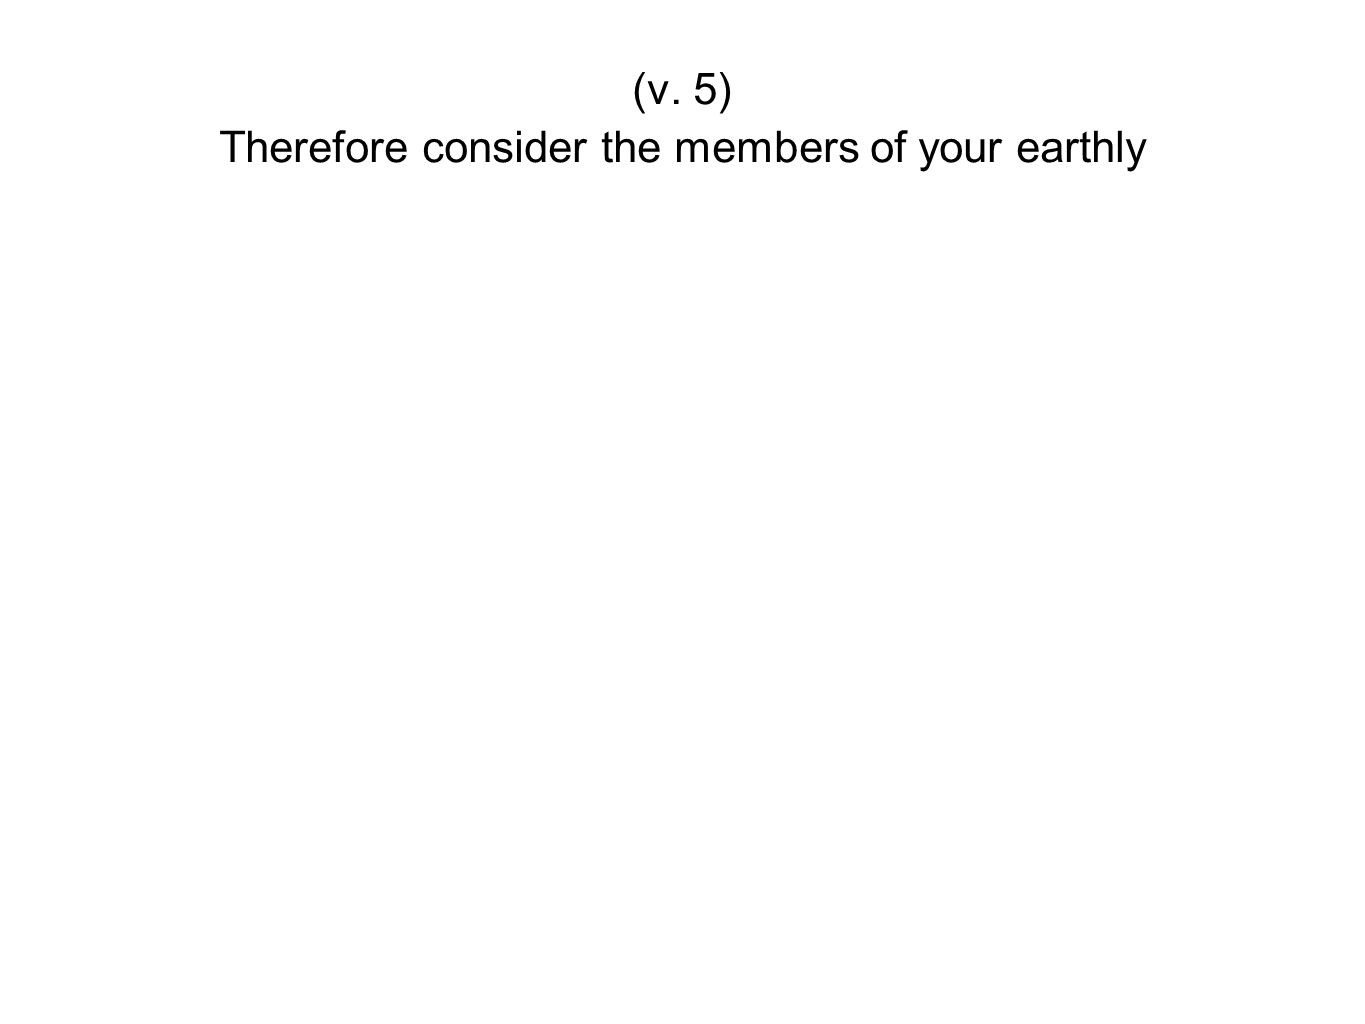 Therefore consider the members of your earthly